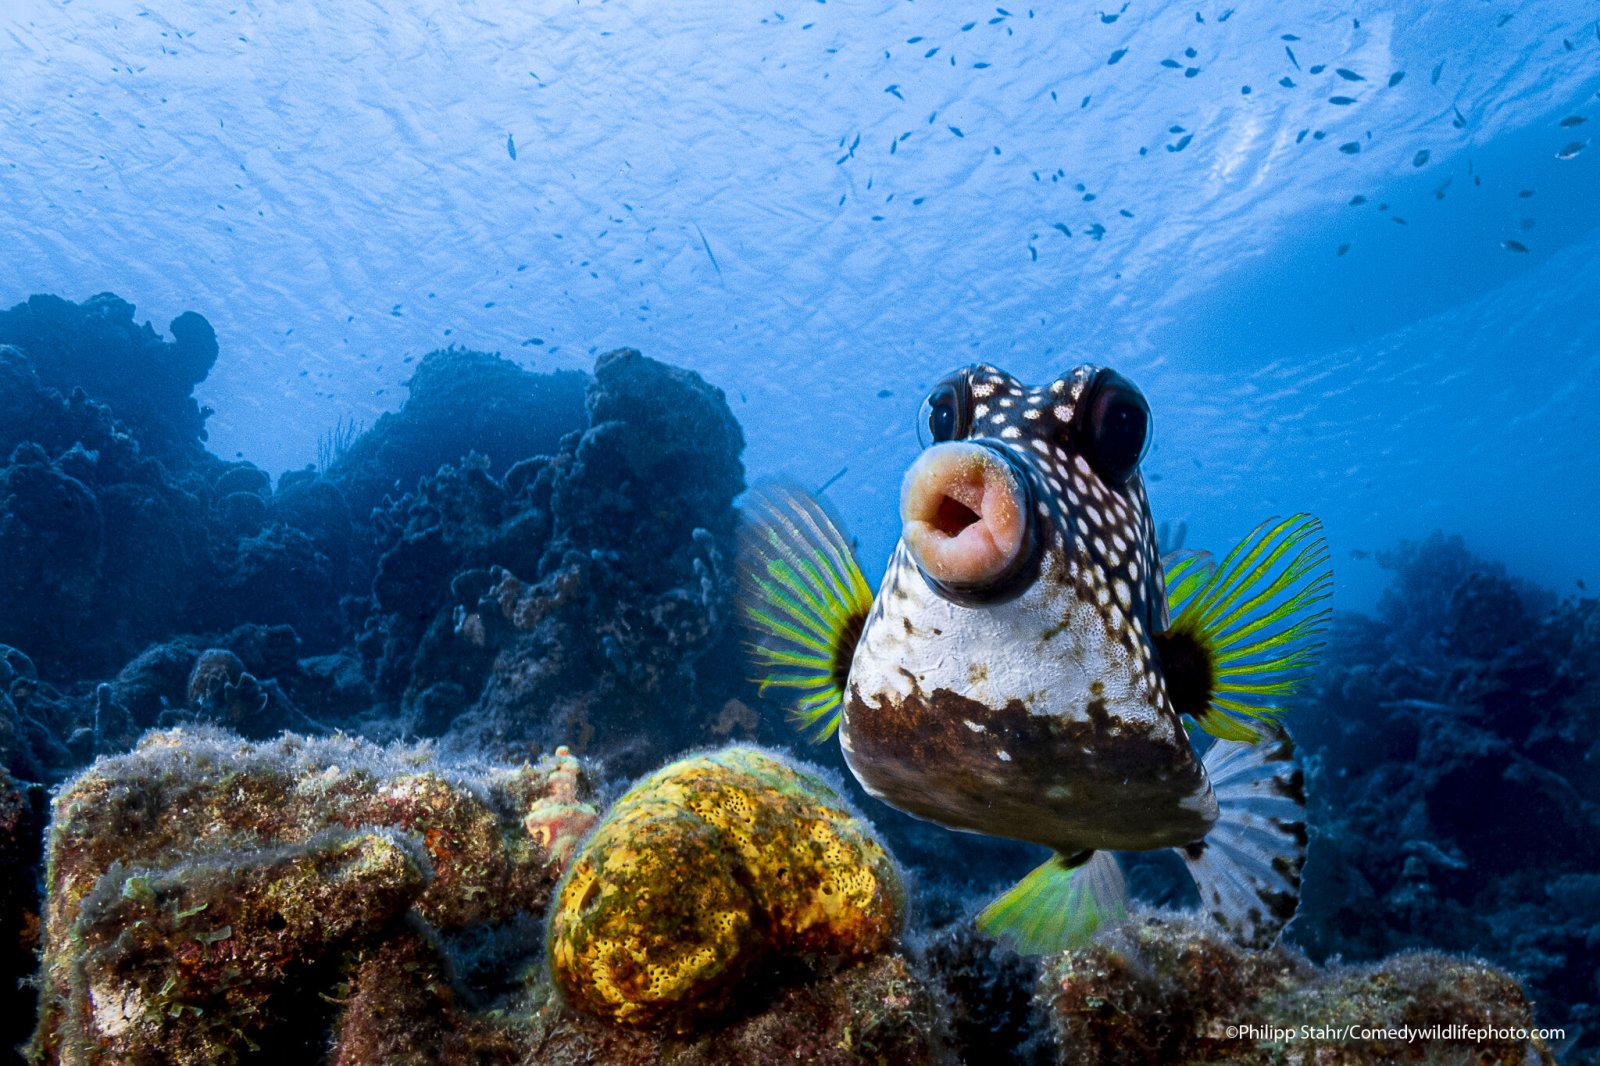 A boxfish off the coast of Curaçao looks like it's pouting for the camera.